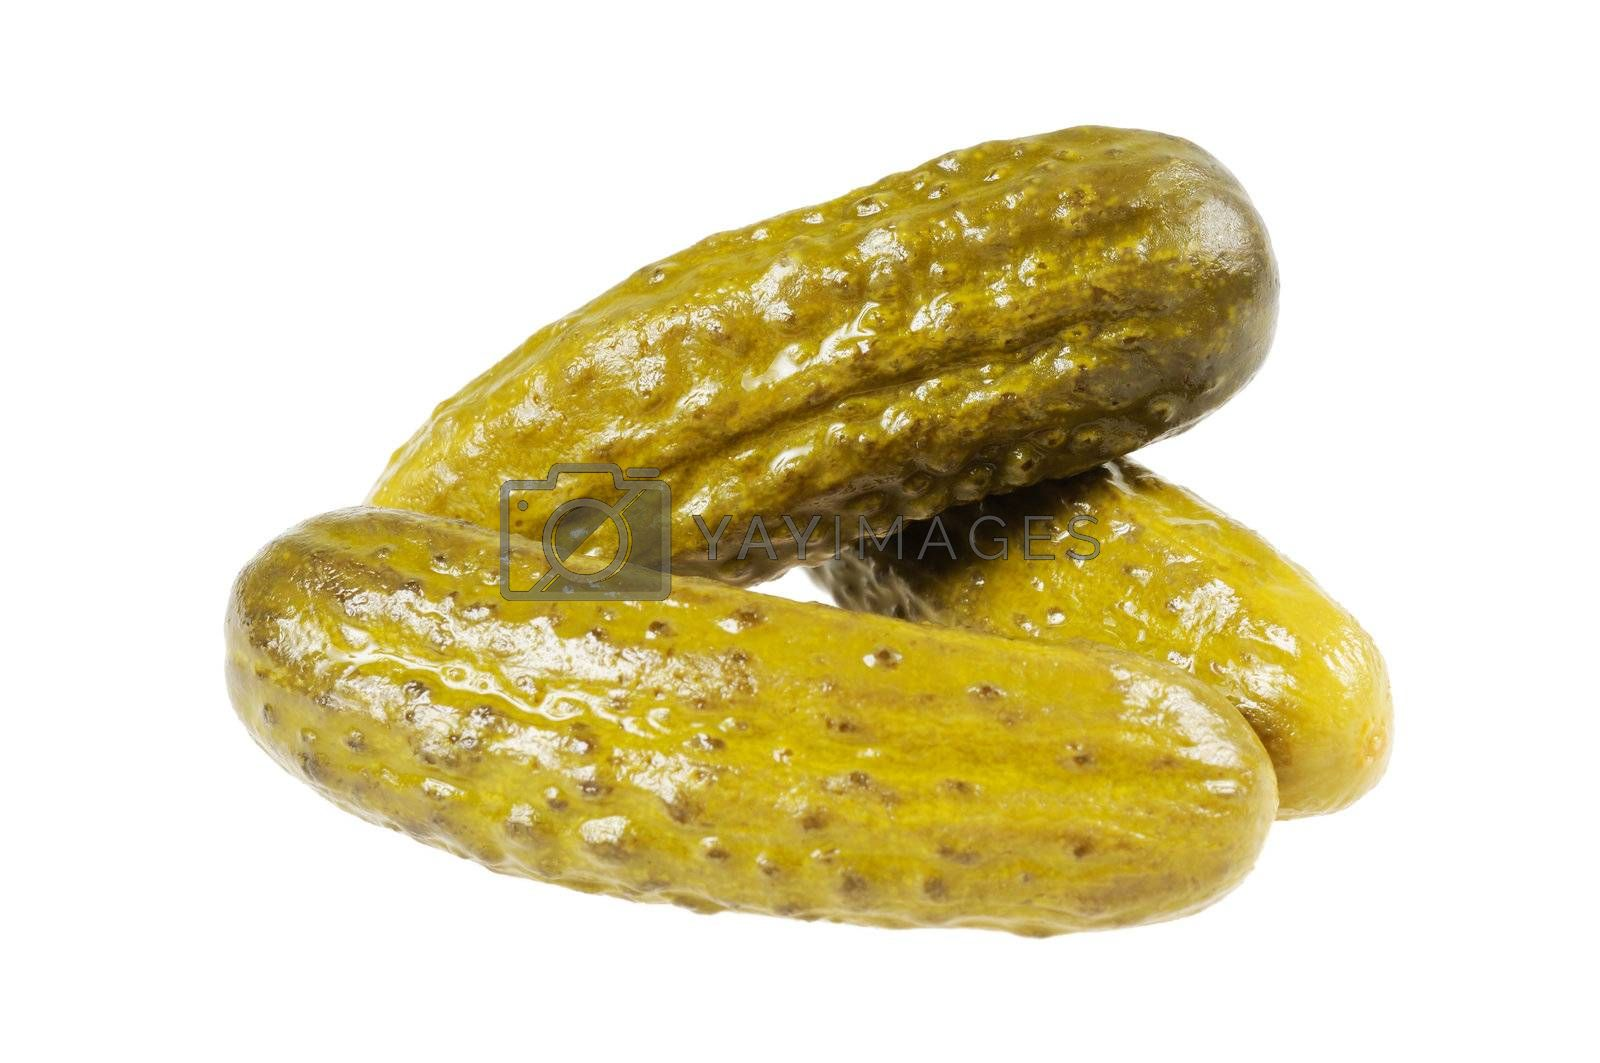 Three pickled  cucumbers.  Gherkins.  Isolated  on white.